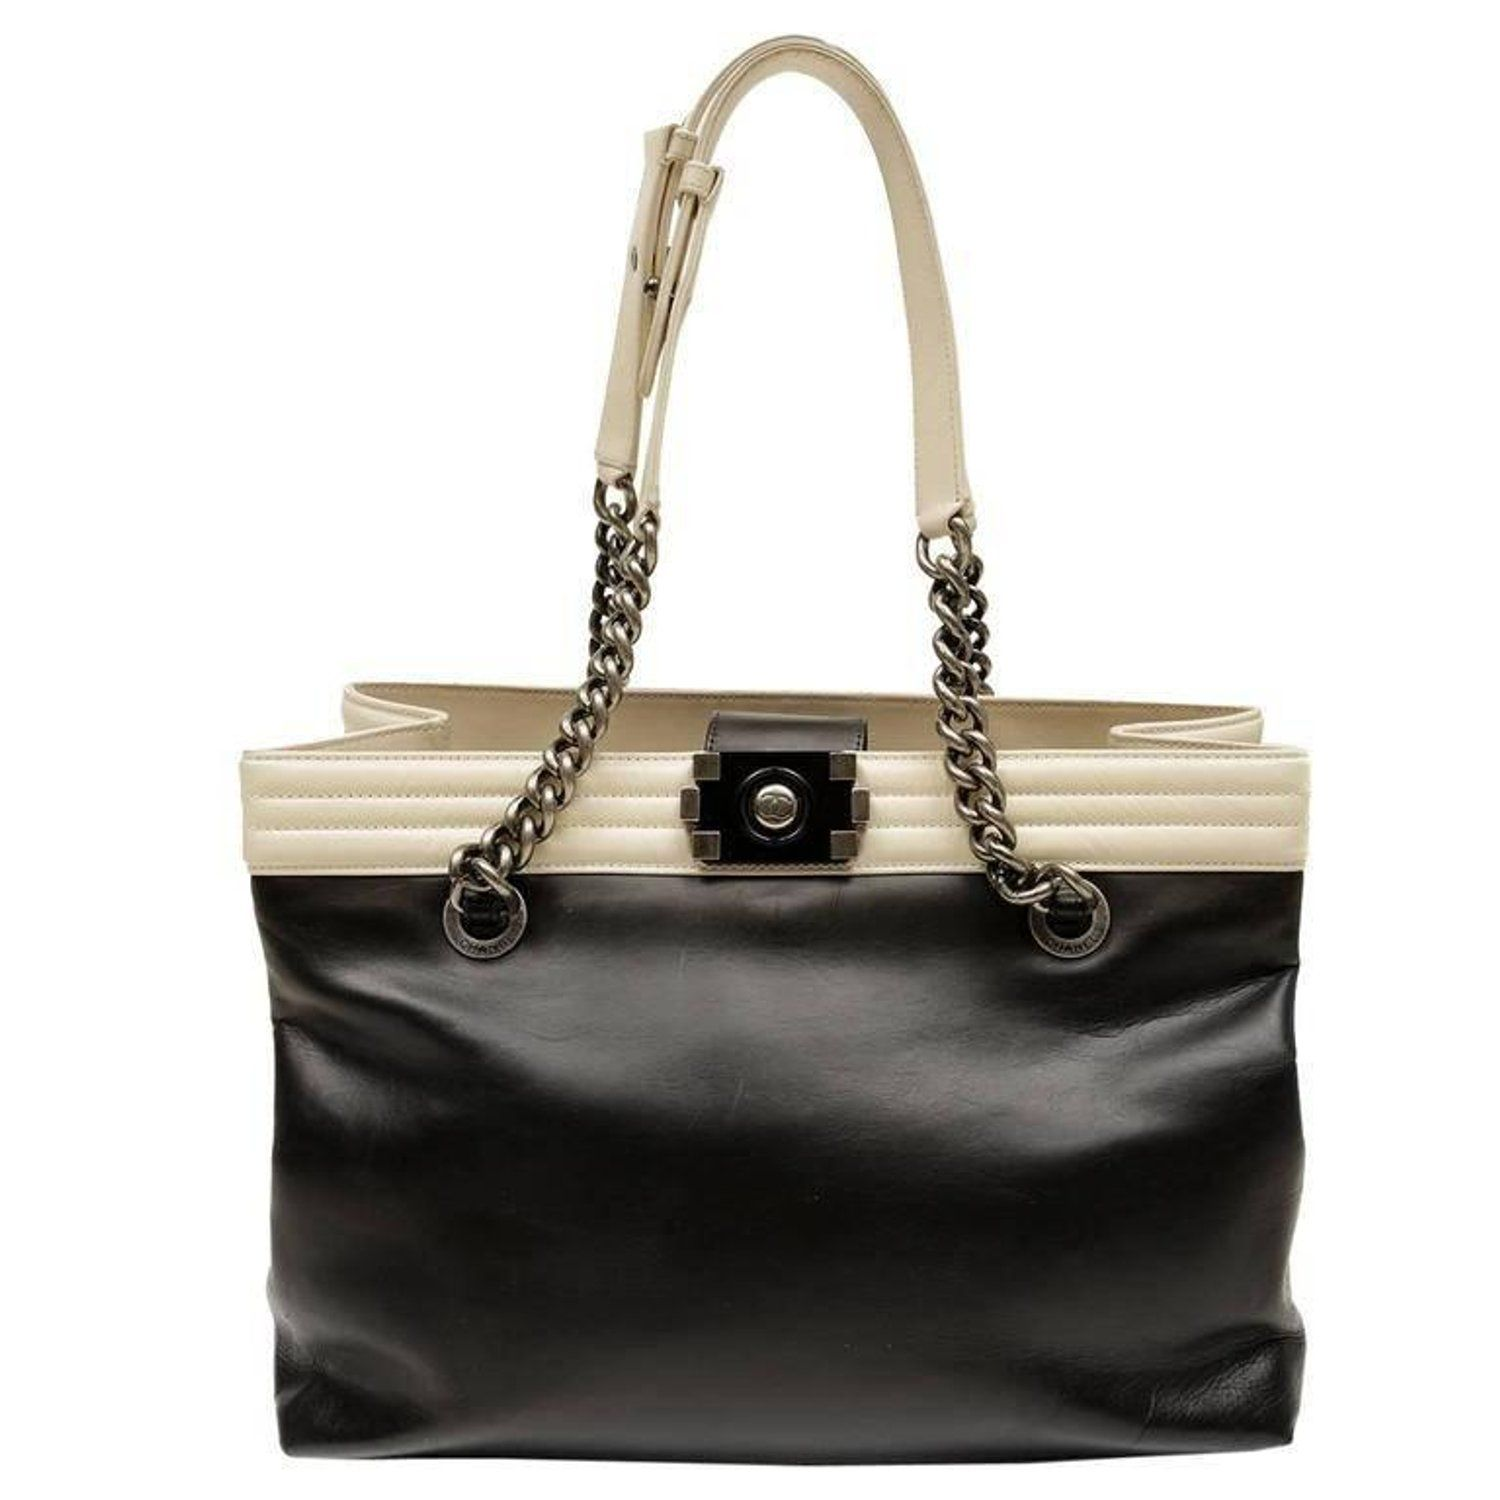 069c892a4dcc Chanel Black Cream Leather Boy Bag Tote Tote Bag